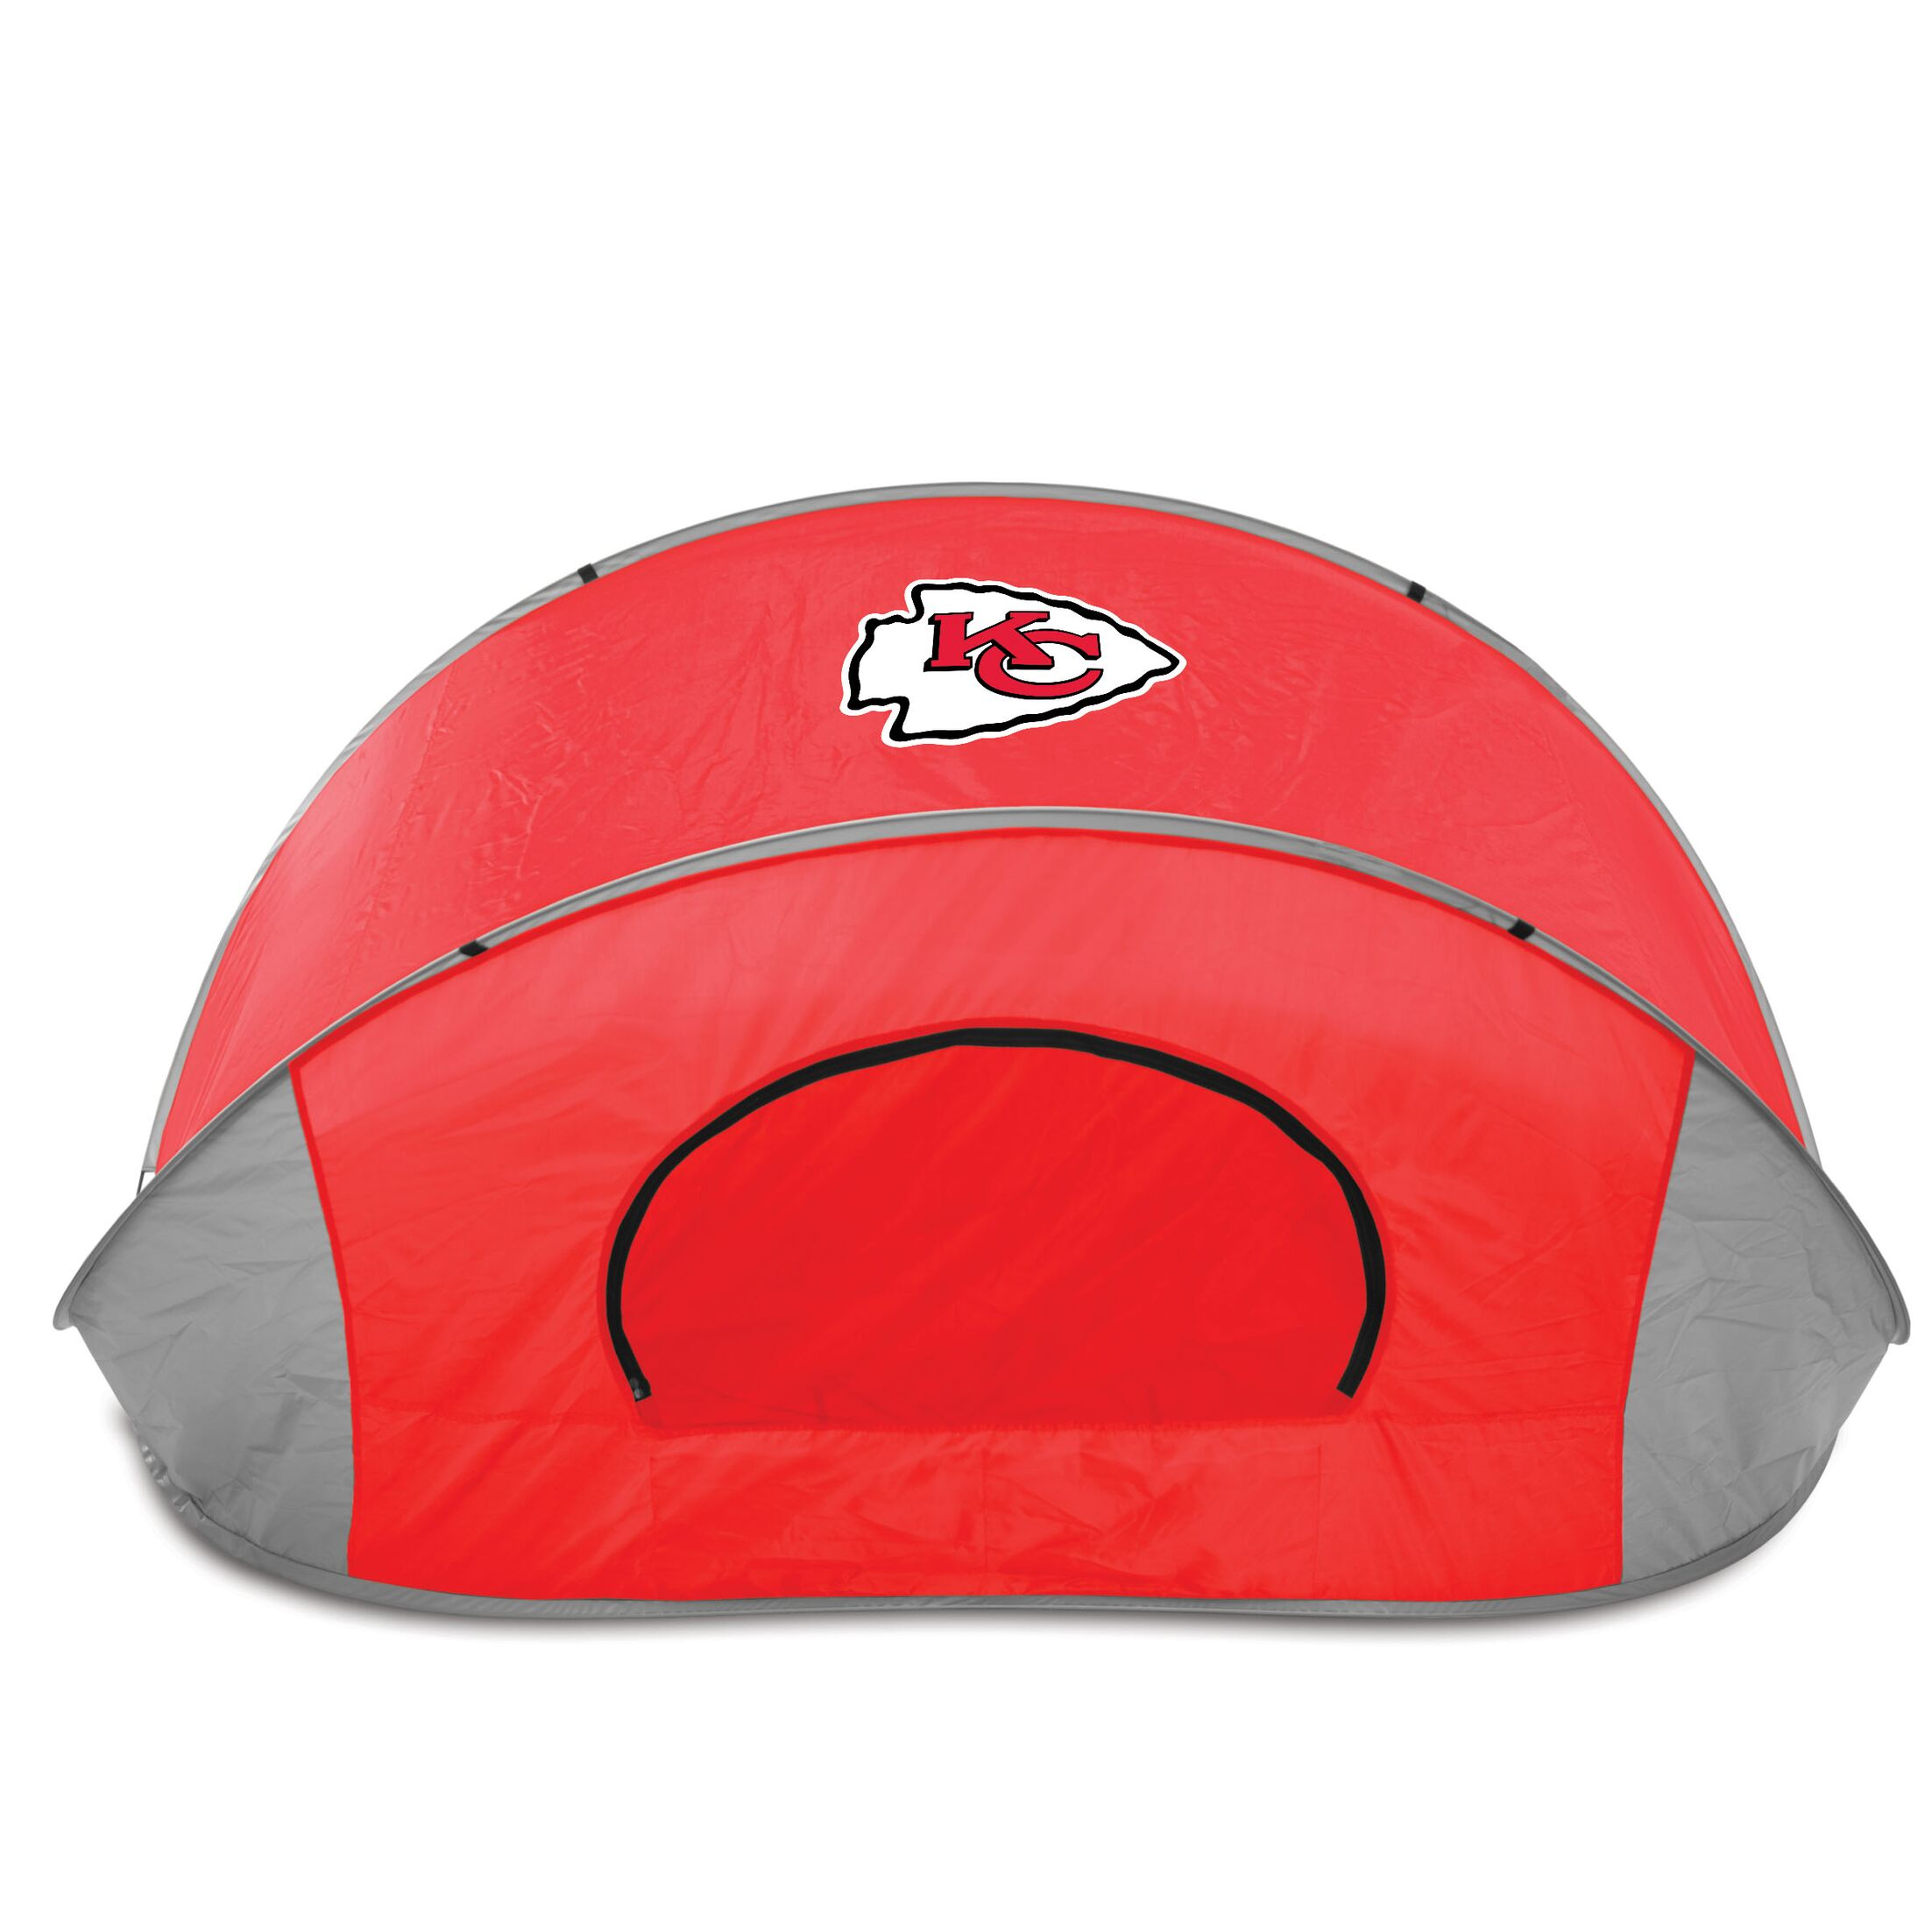 NFL Manta Shelter Color: Red, NFL Team: Kansas City Chiefs